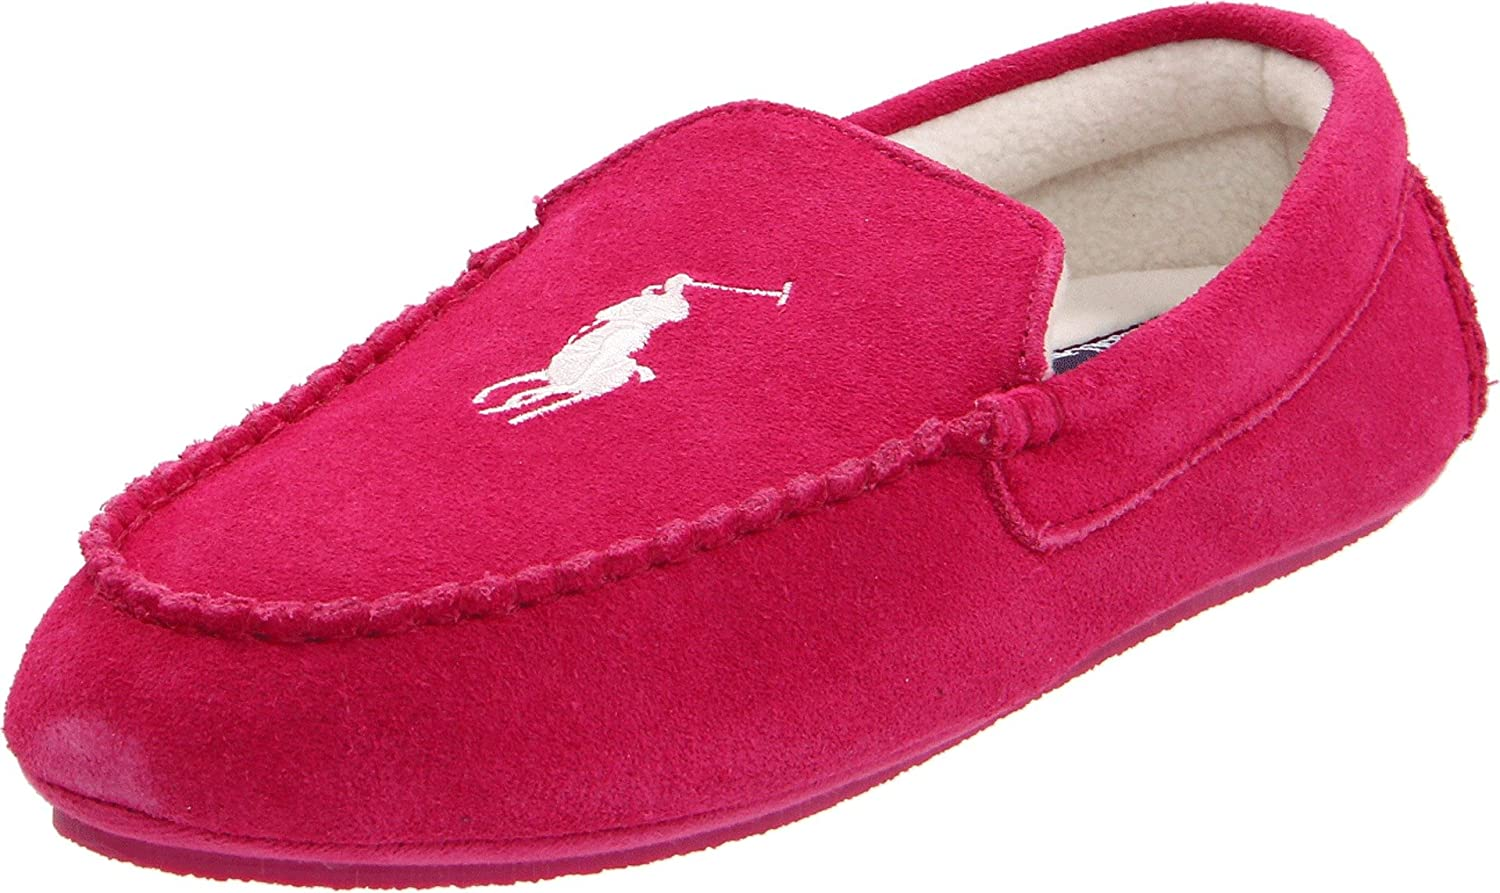 Polo by Ralph Lauren Desmond Kid Super-cheap Moccasin Toddler Free Shipping New Little Loafer